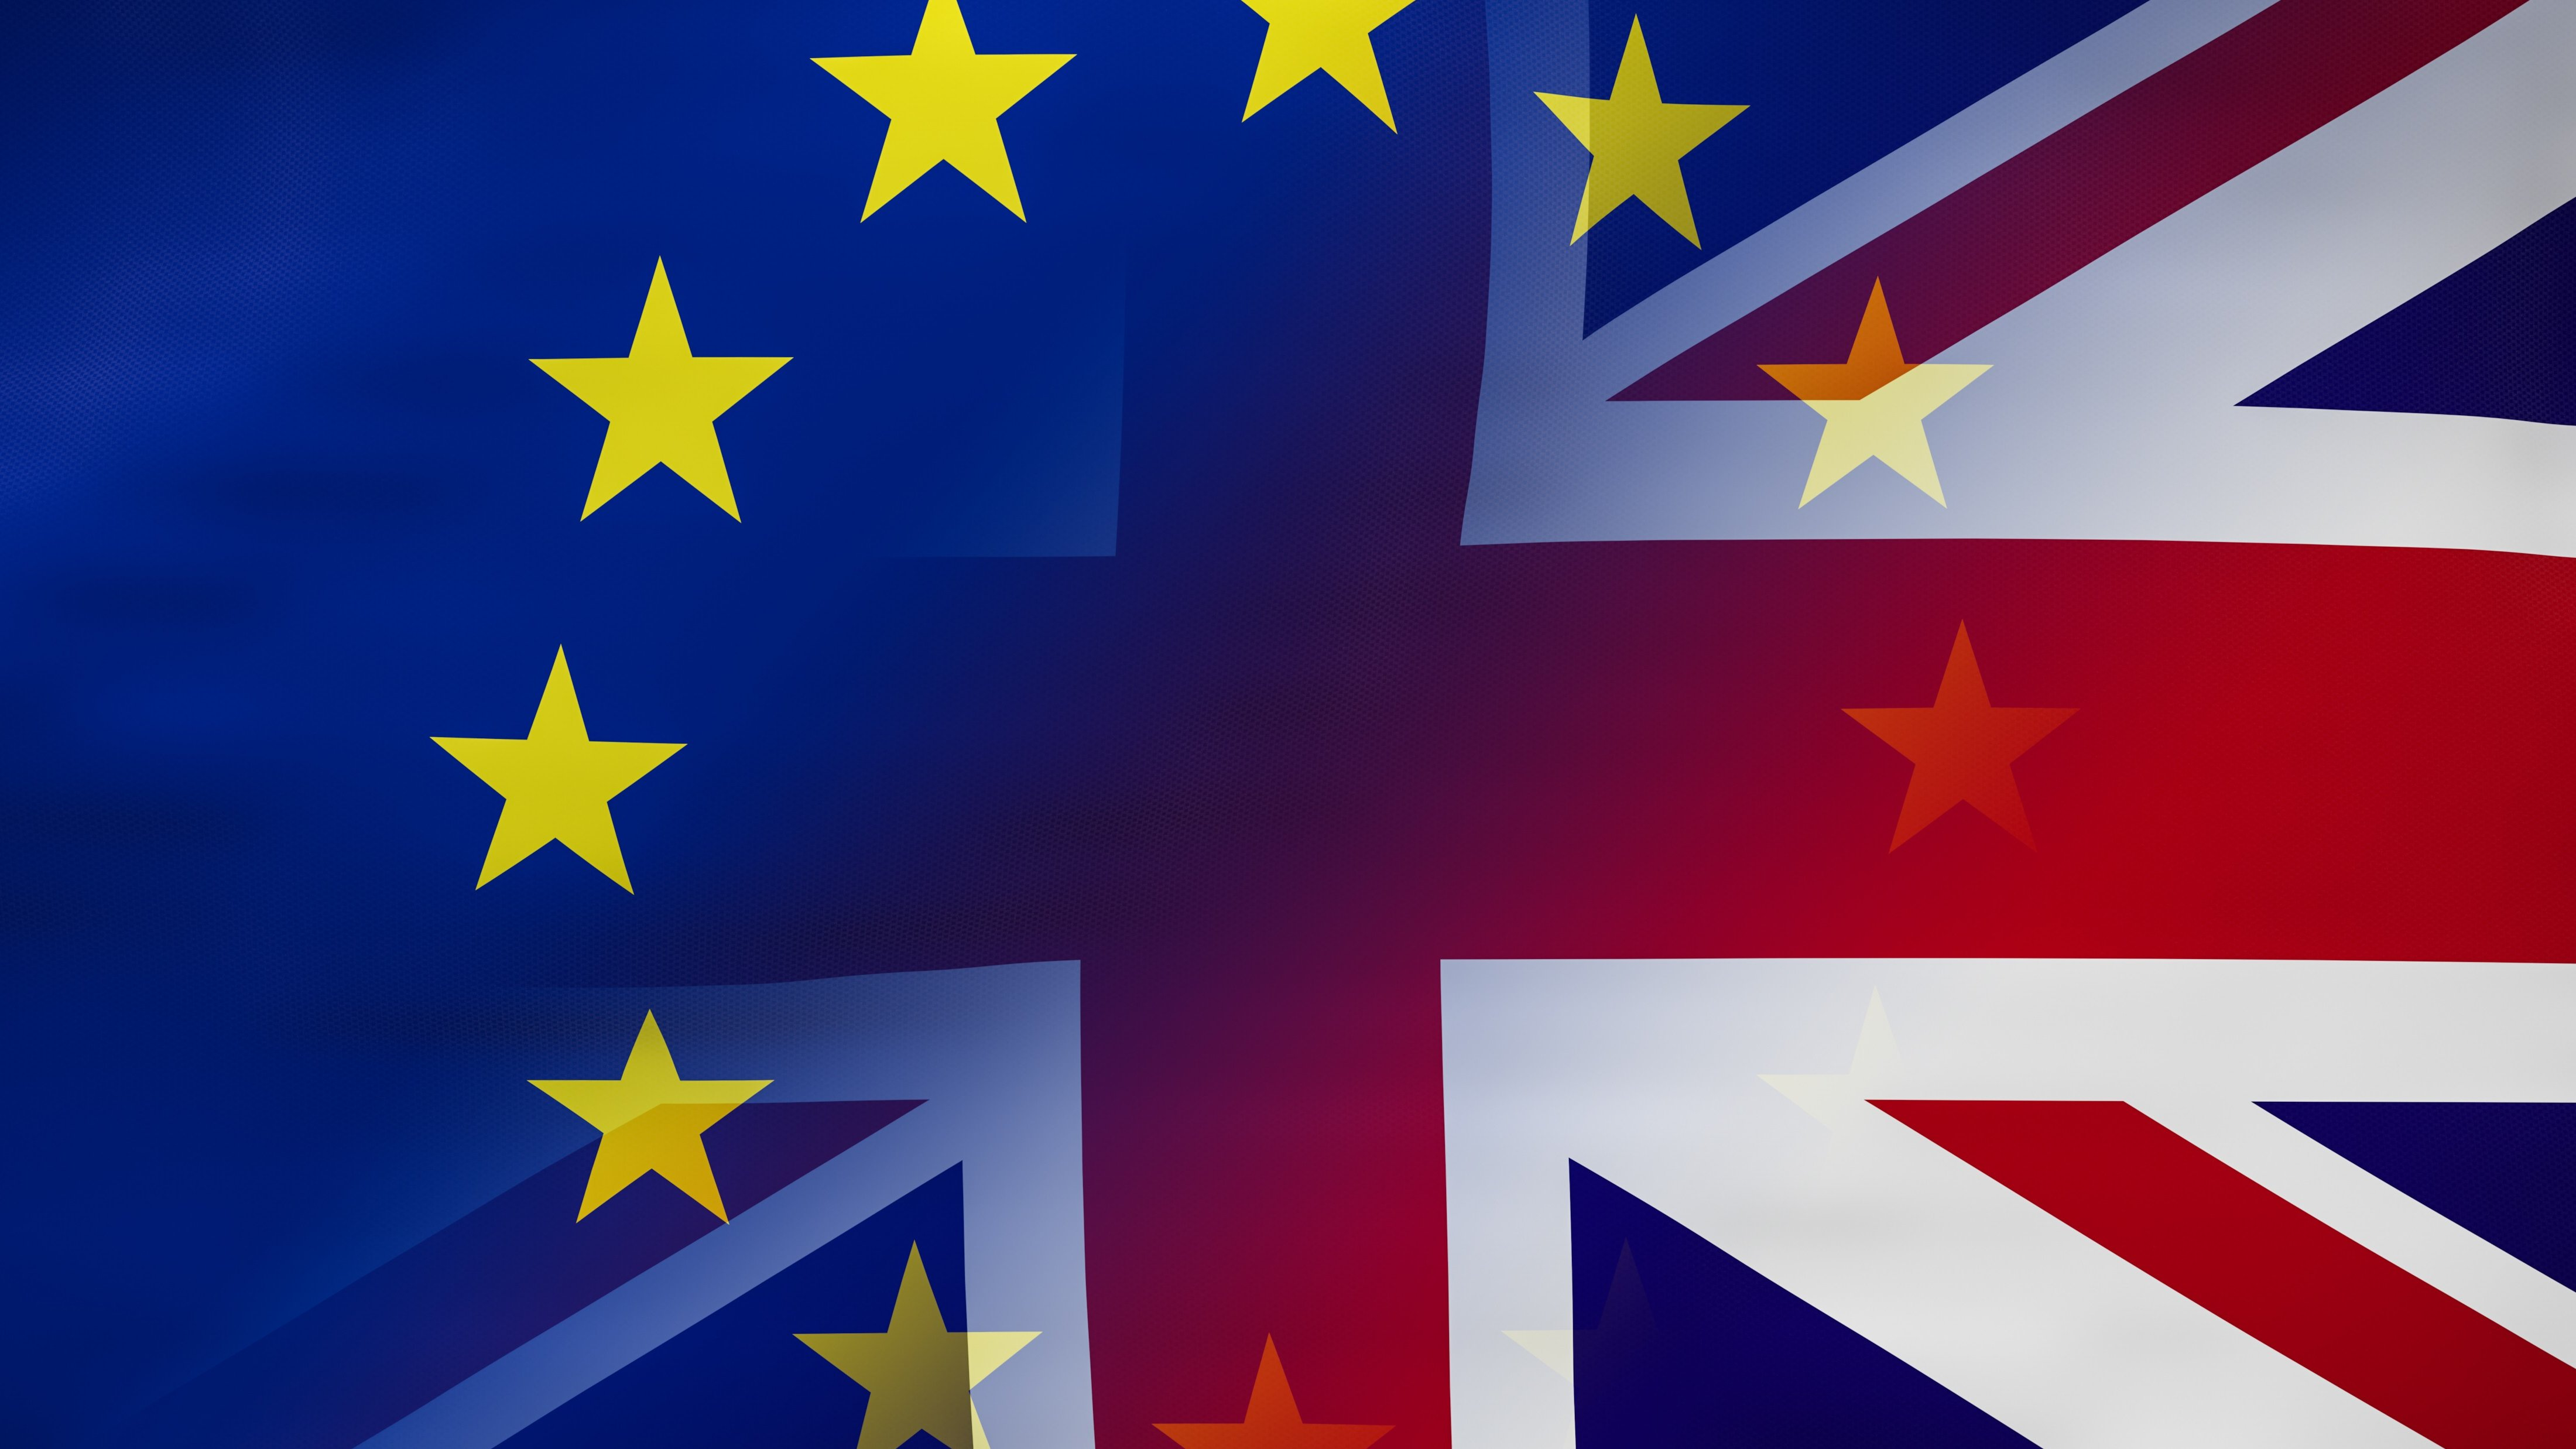 Cloudalize prepares for brexit and the withdrawal of the United Kingdom of Great Britain and Northern Ireland from the European Union